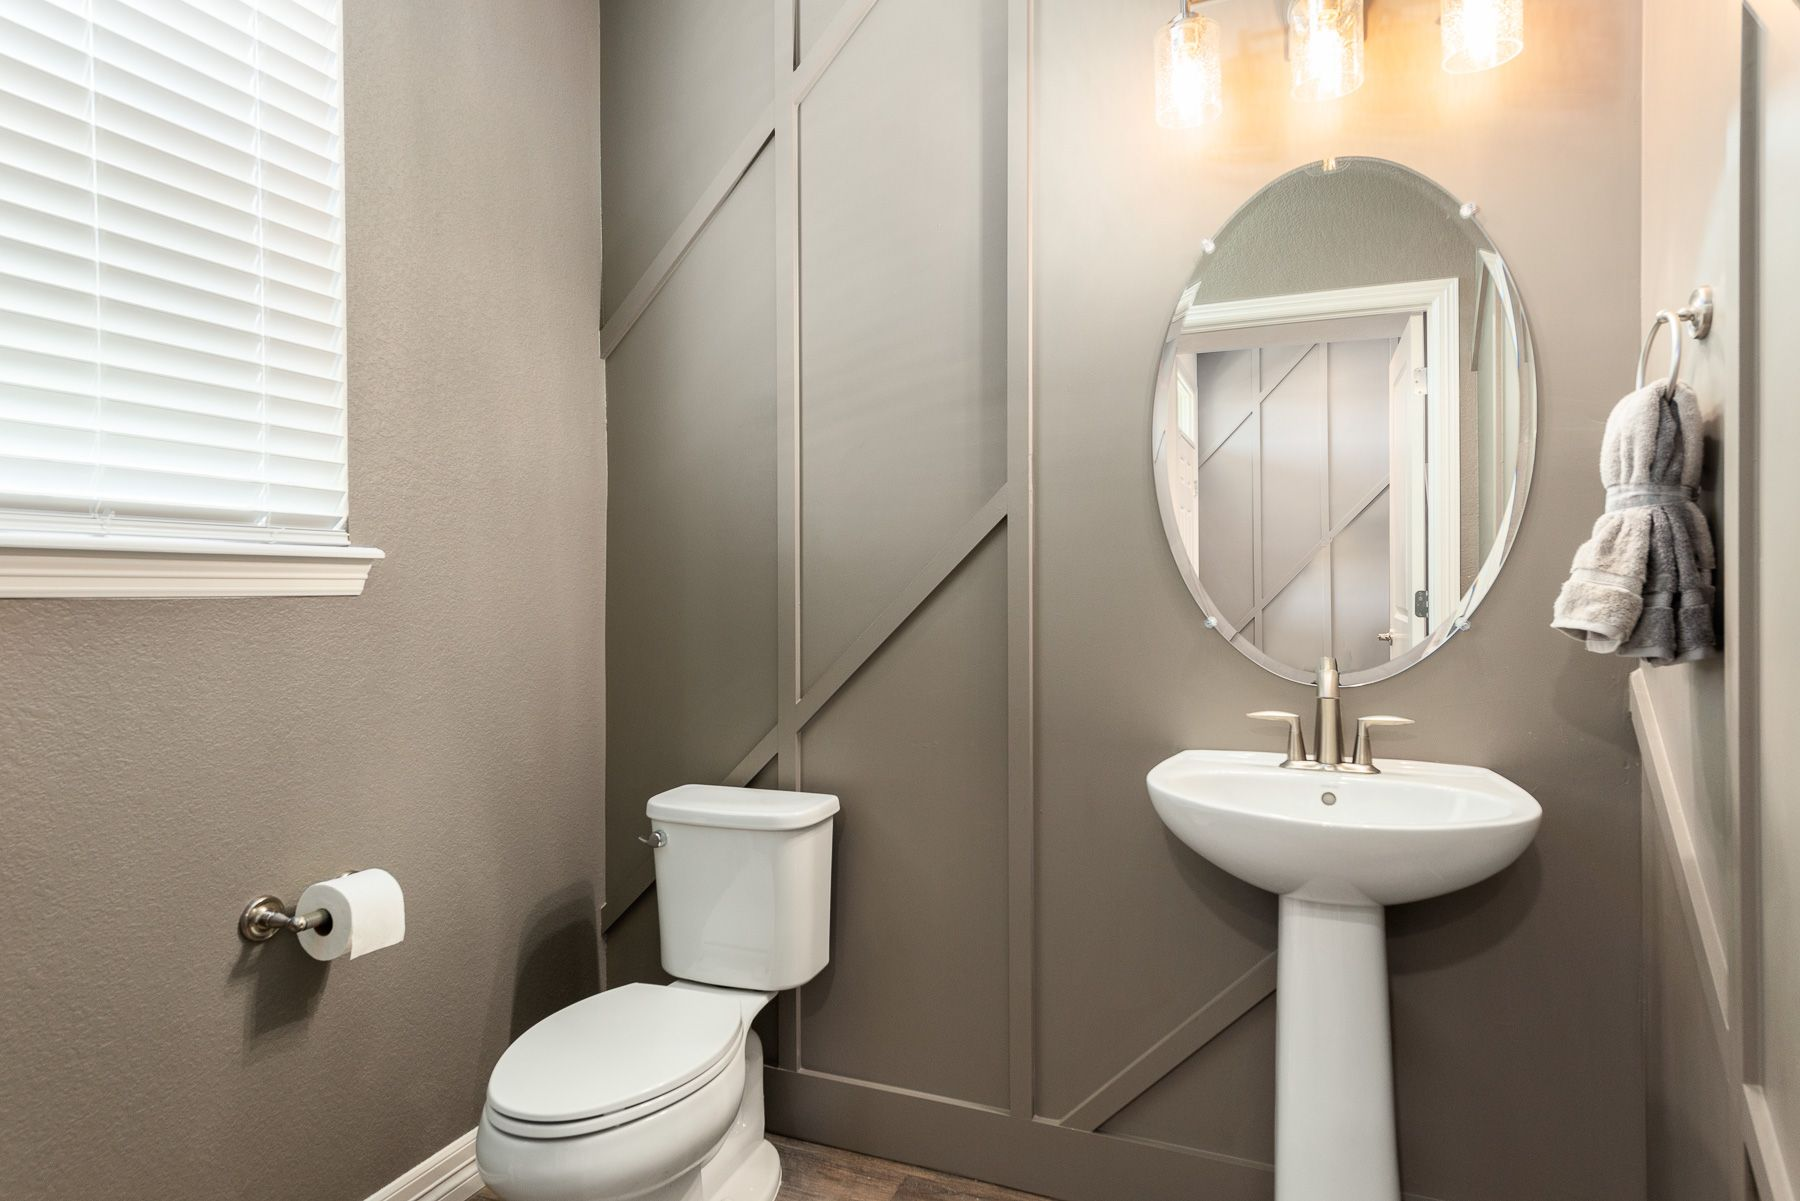 Bathroom featured in the Calvin By Lokal Homes in Denver, CO